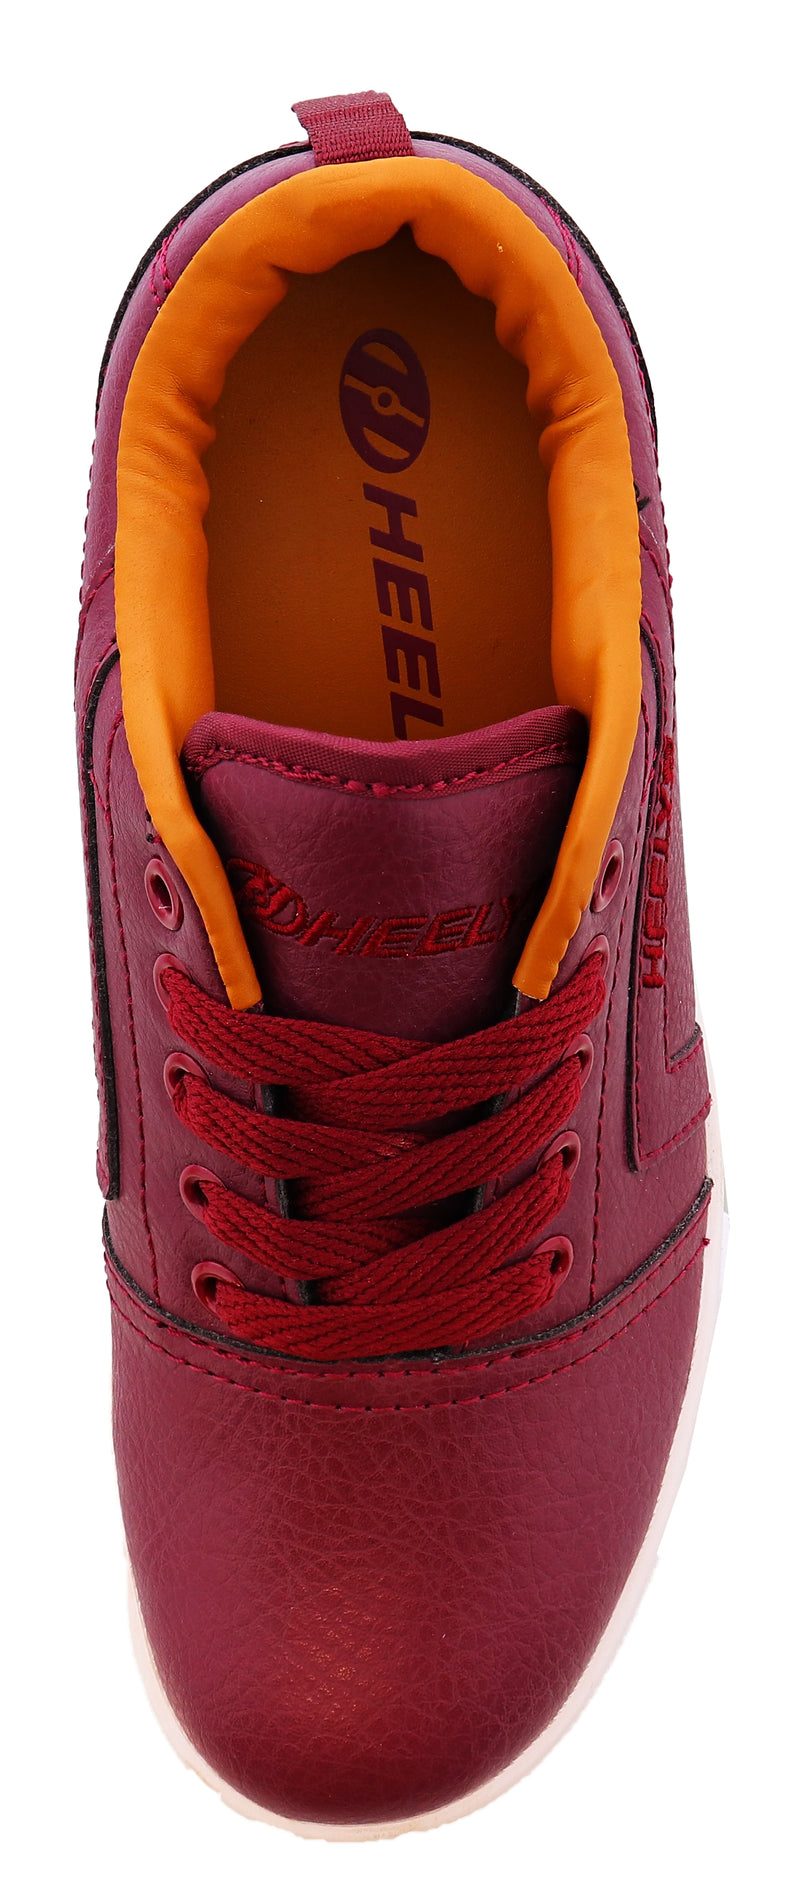 Heelys Kids Skateboard Wheeled Shoes With Wheels Easy On Shoes GR8 Pro